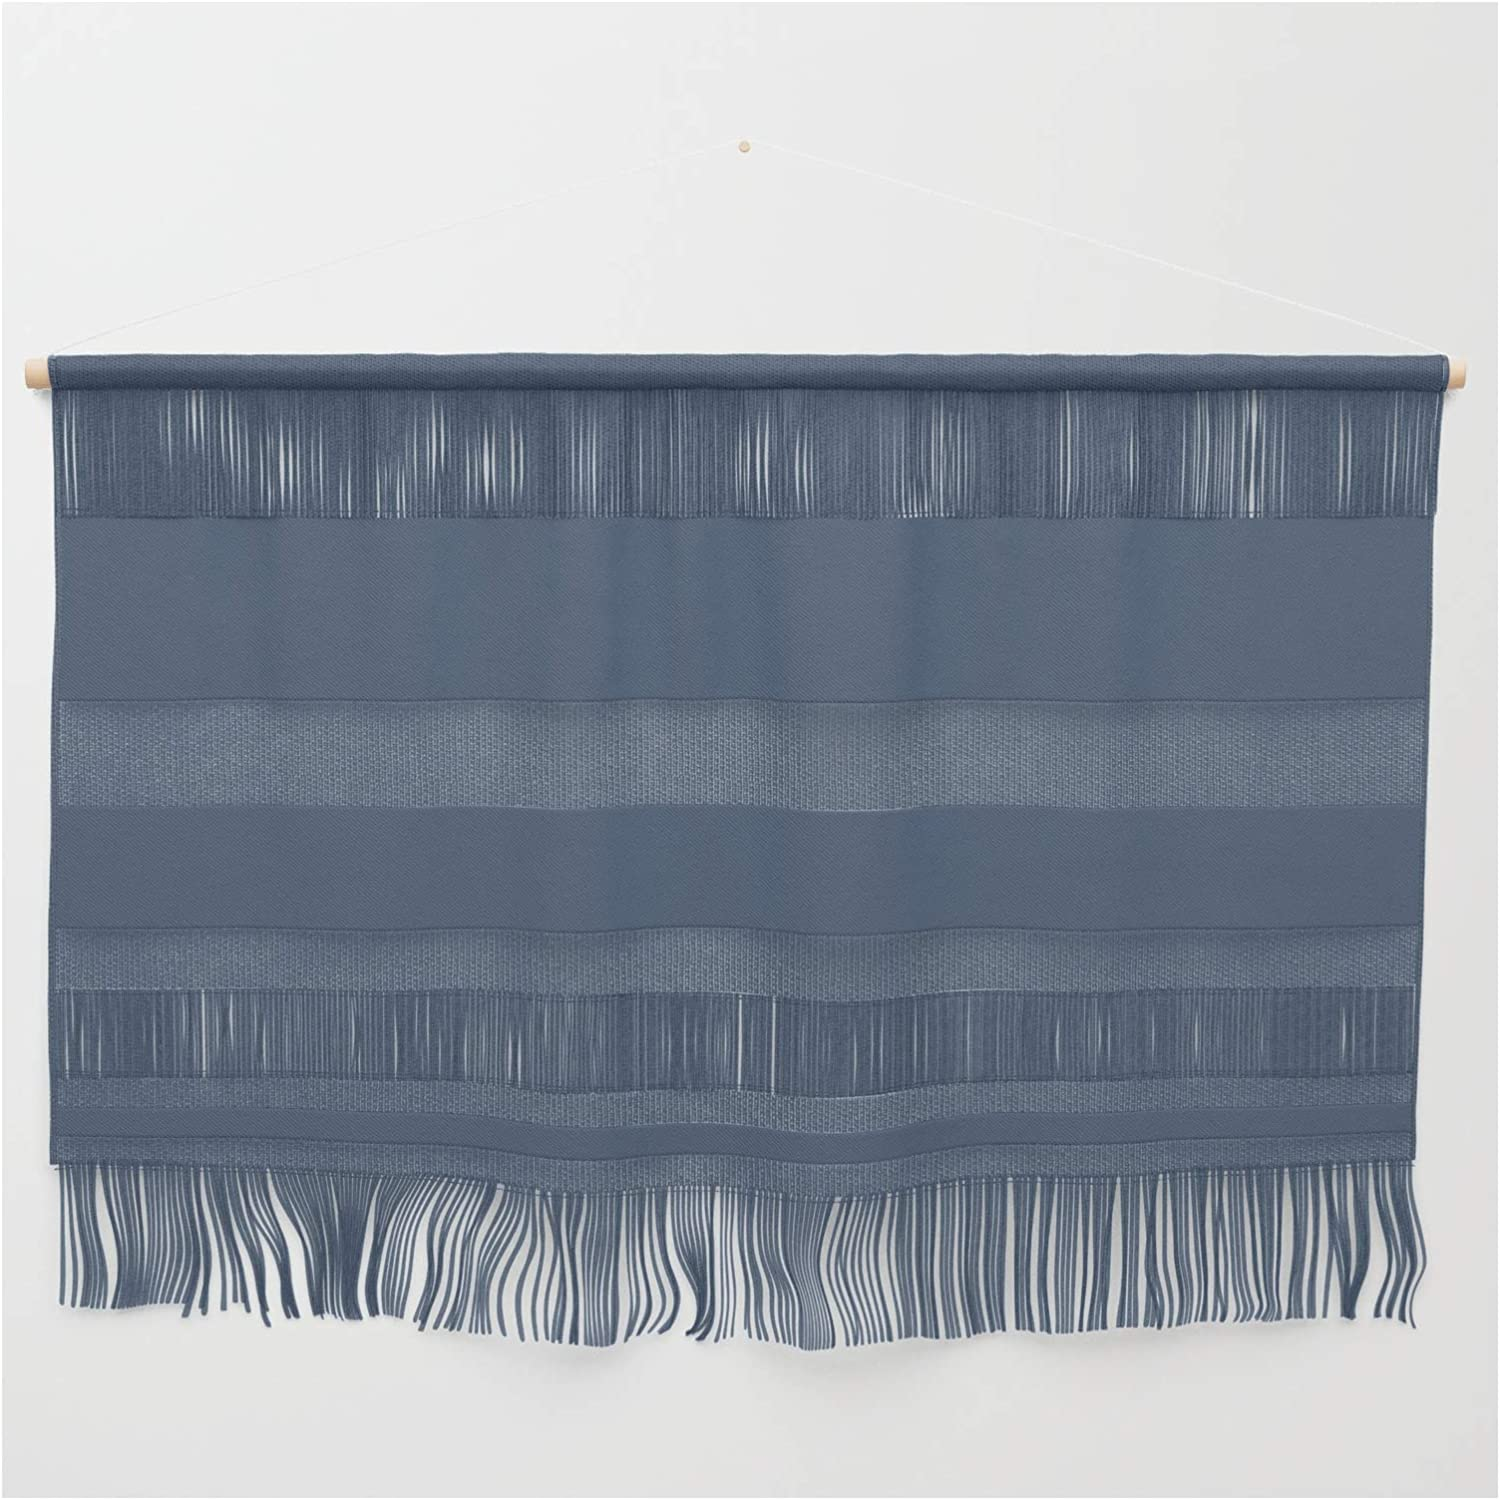 Max 45% OFF Society6 Simply Indigo Blue by Simple Discount is also underway Luxe Sma - on Hanging Wall